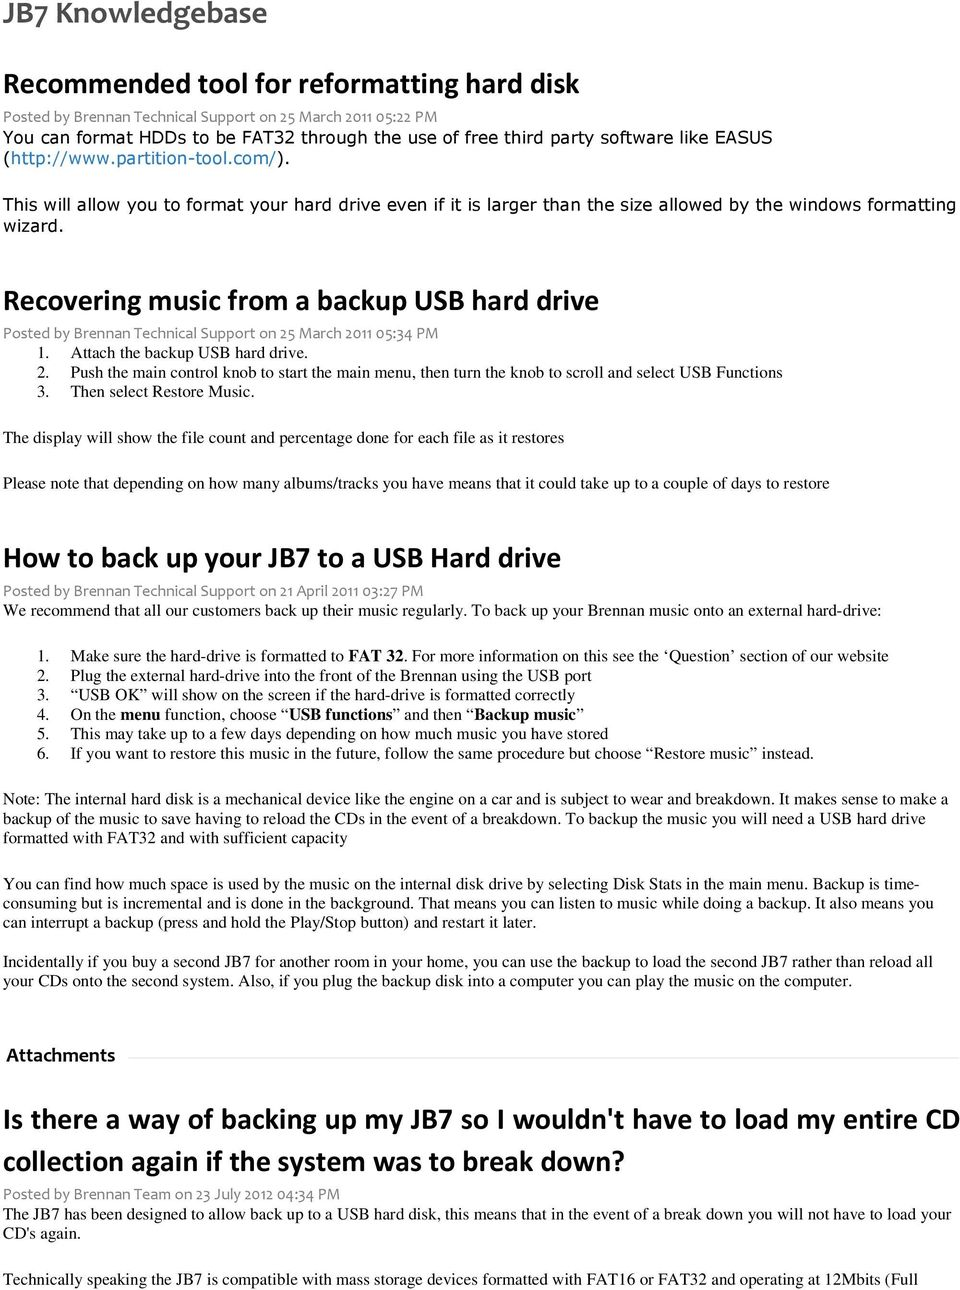 Recommended tool for reformatting hard disk - PDF